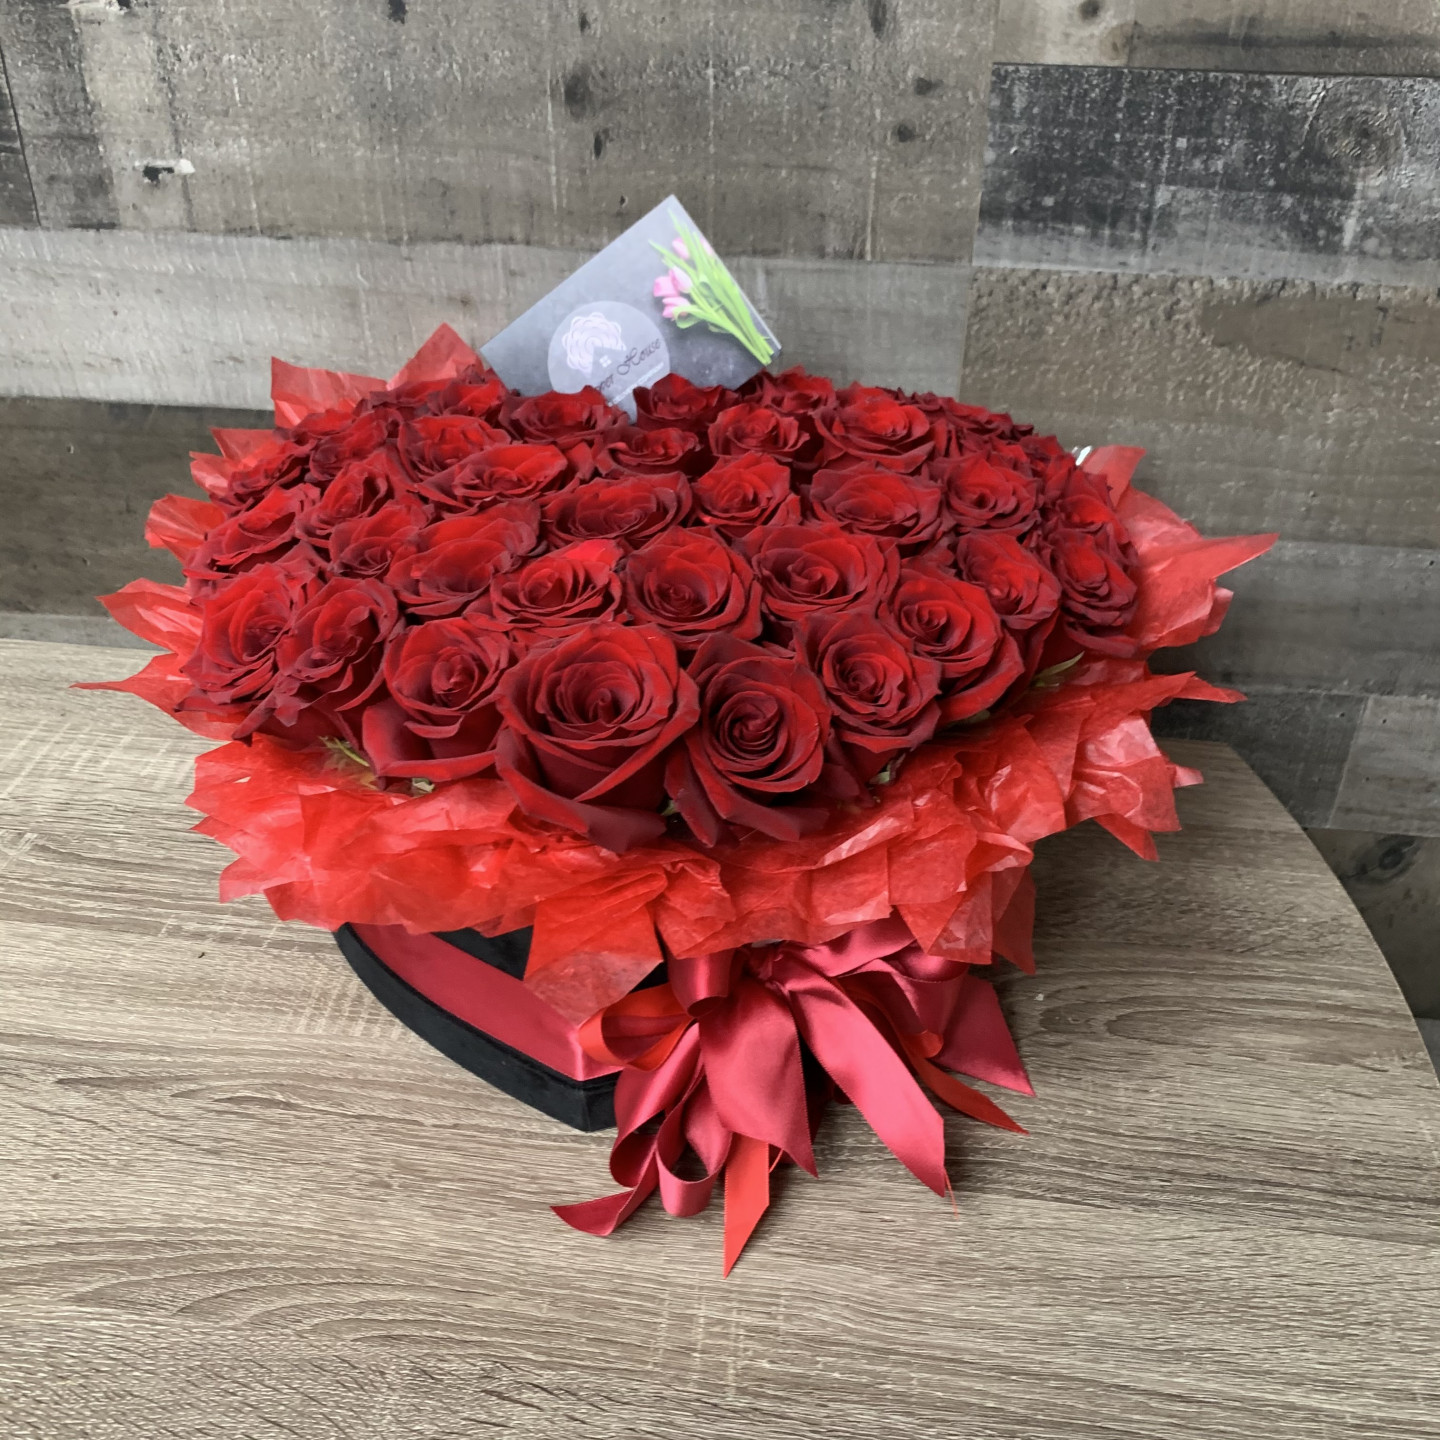 Redsora Heart Flower Box